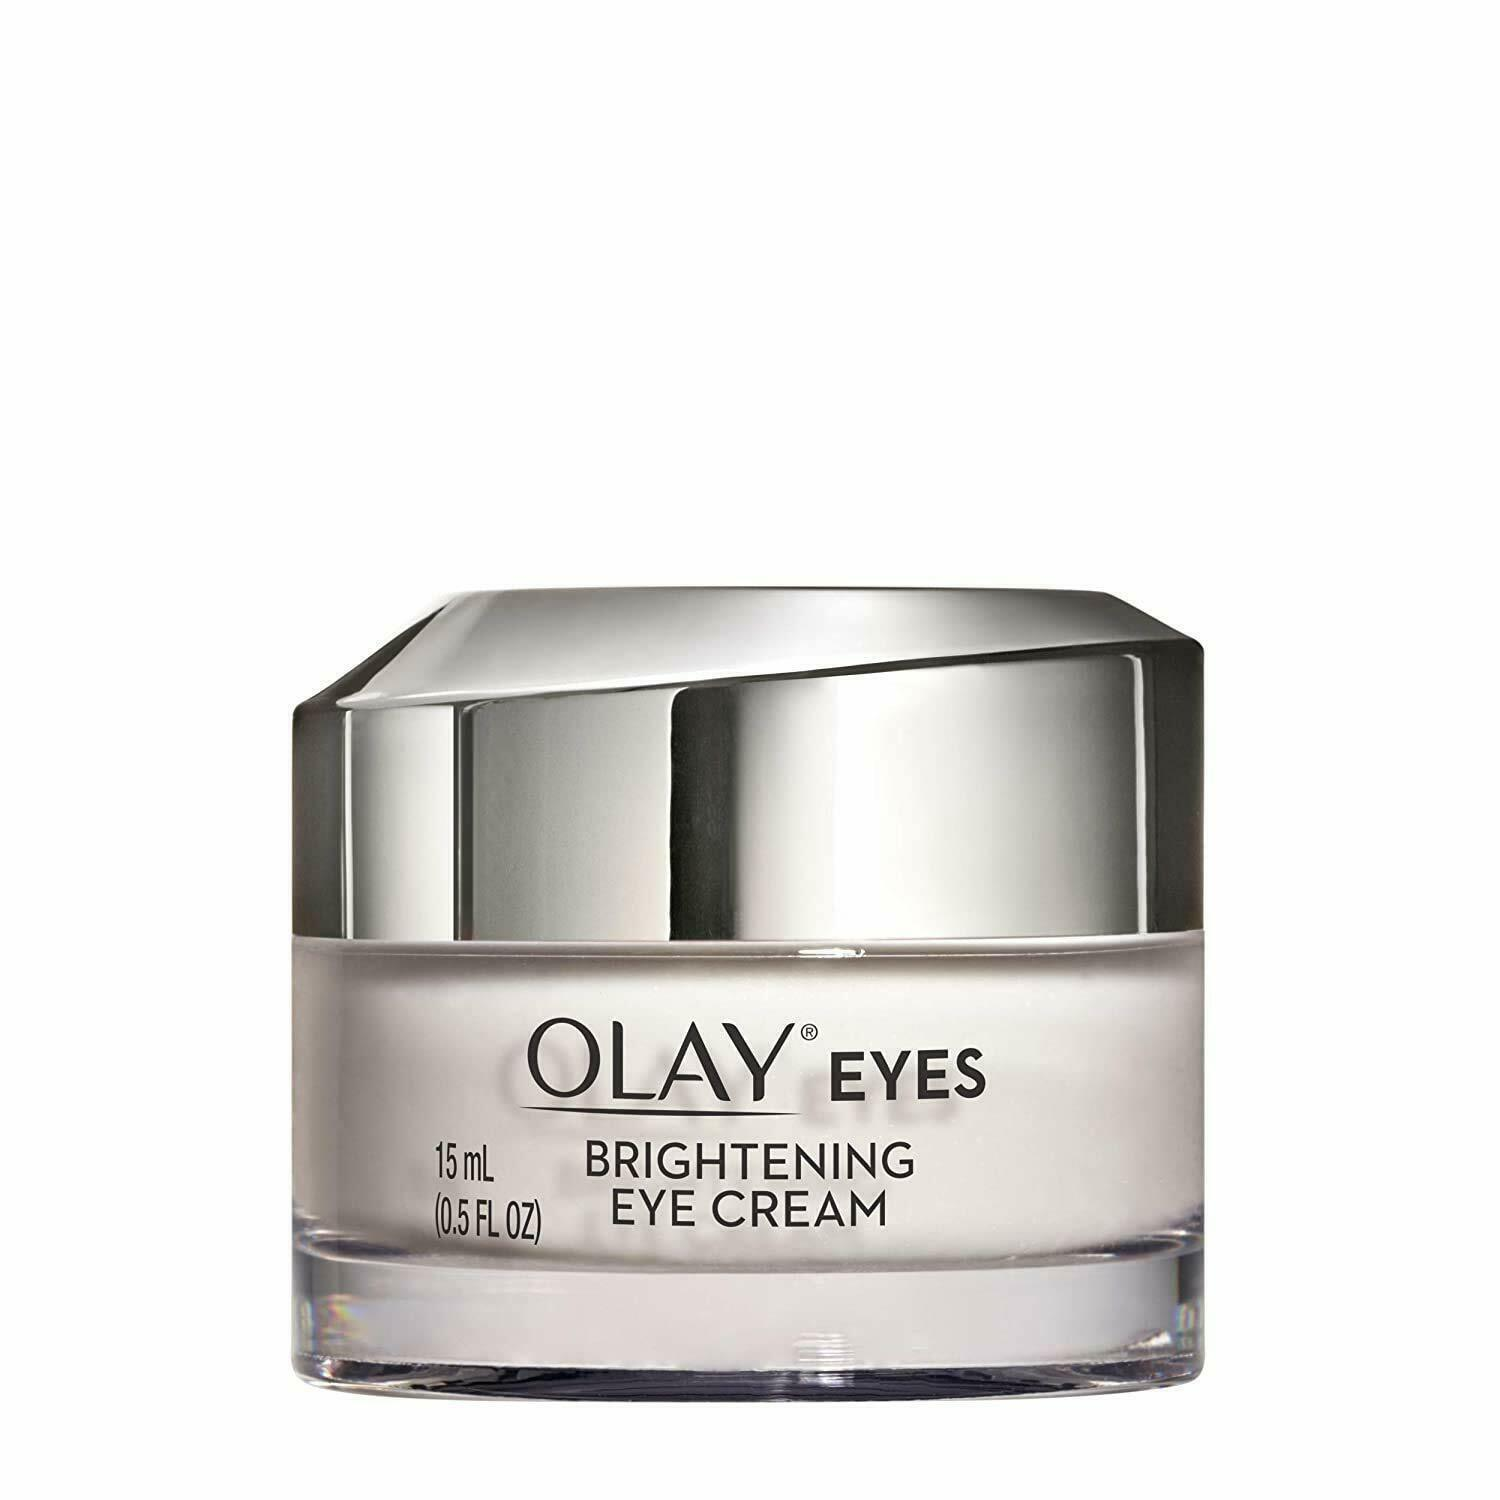 Primary image for Olay Vitamin C Brightening Eye Cream to Help Reduce Dark Circles, 0.5 Fl Oz